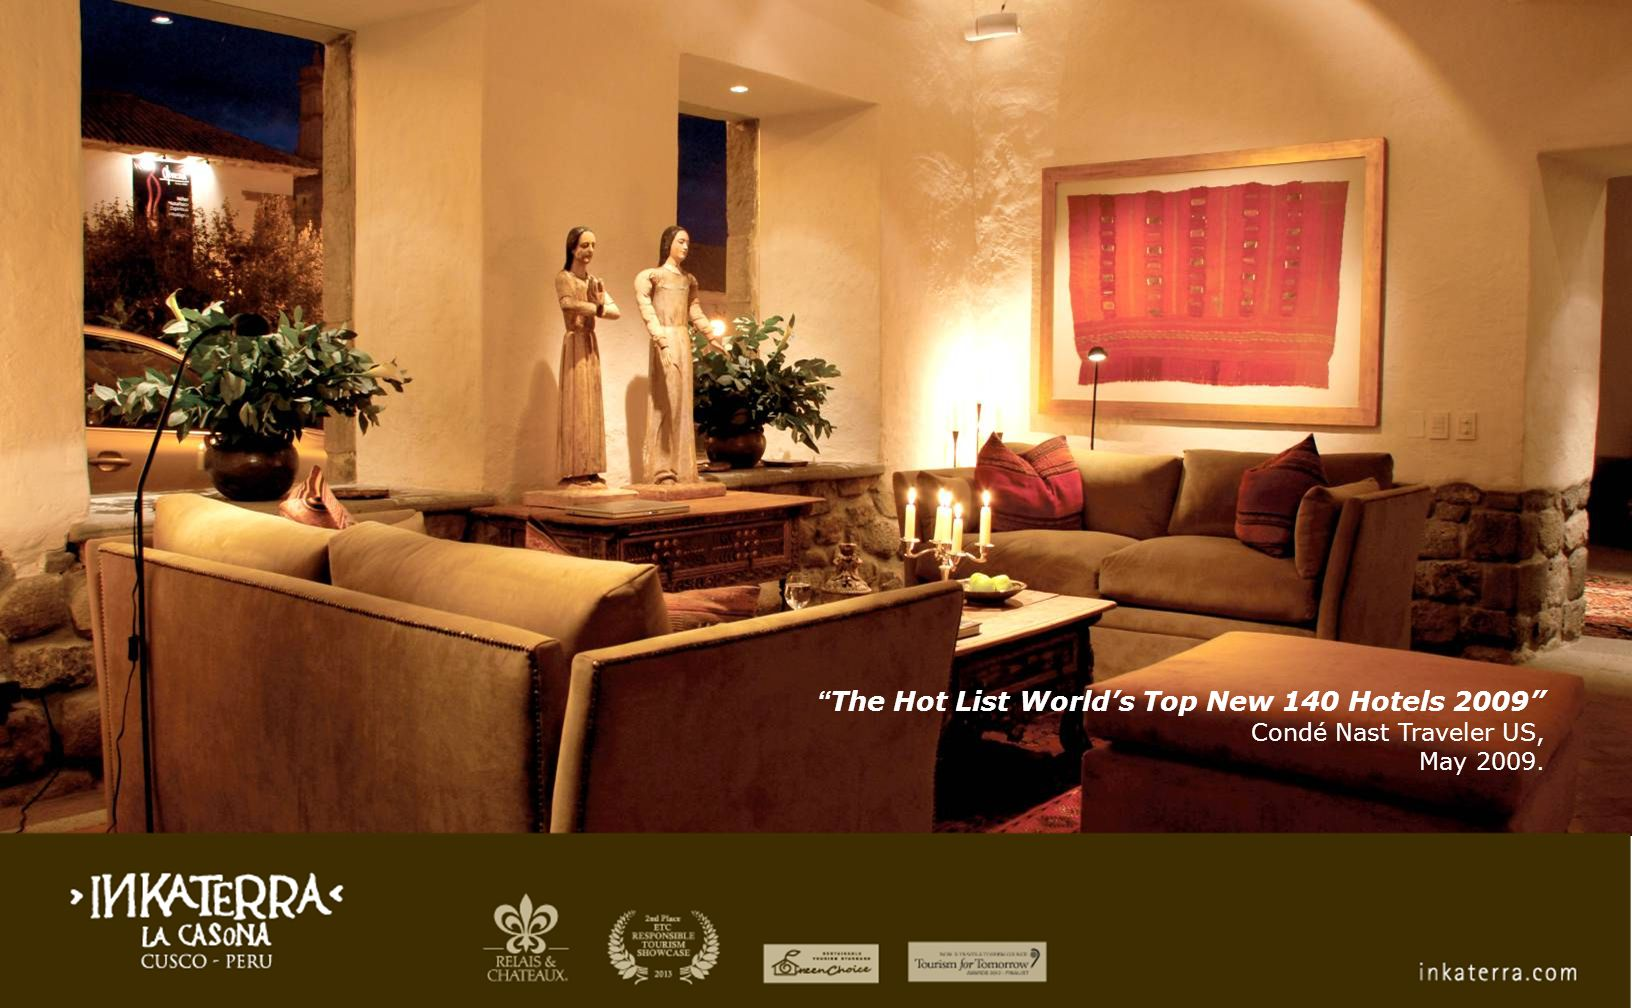 The Hot List World's Top New 140 Hotels 2009 Condé Nast Traveler US, May 2009.